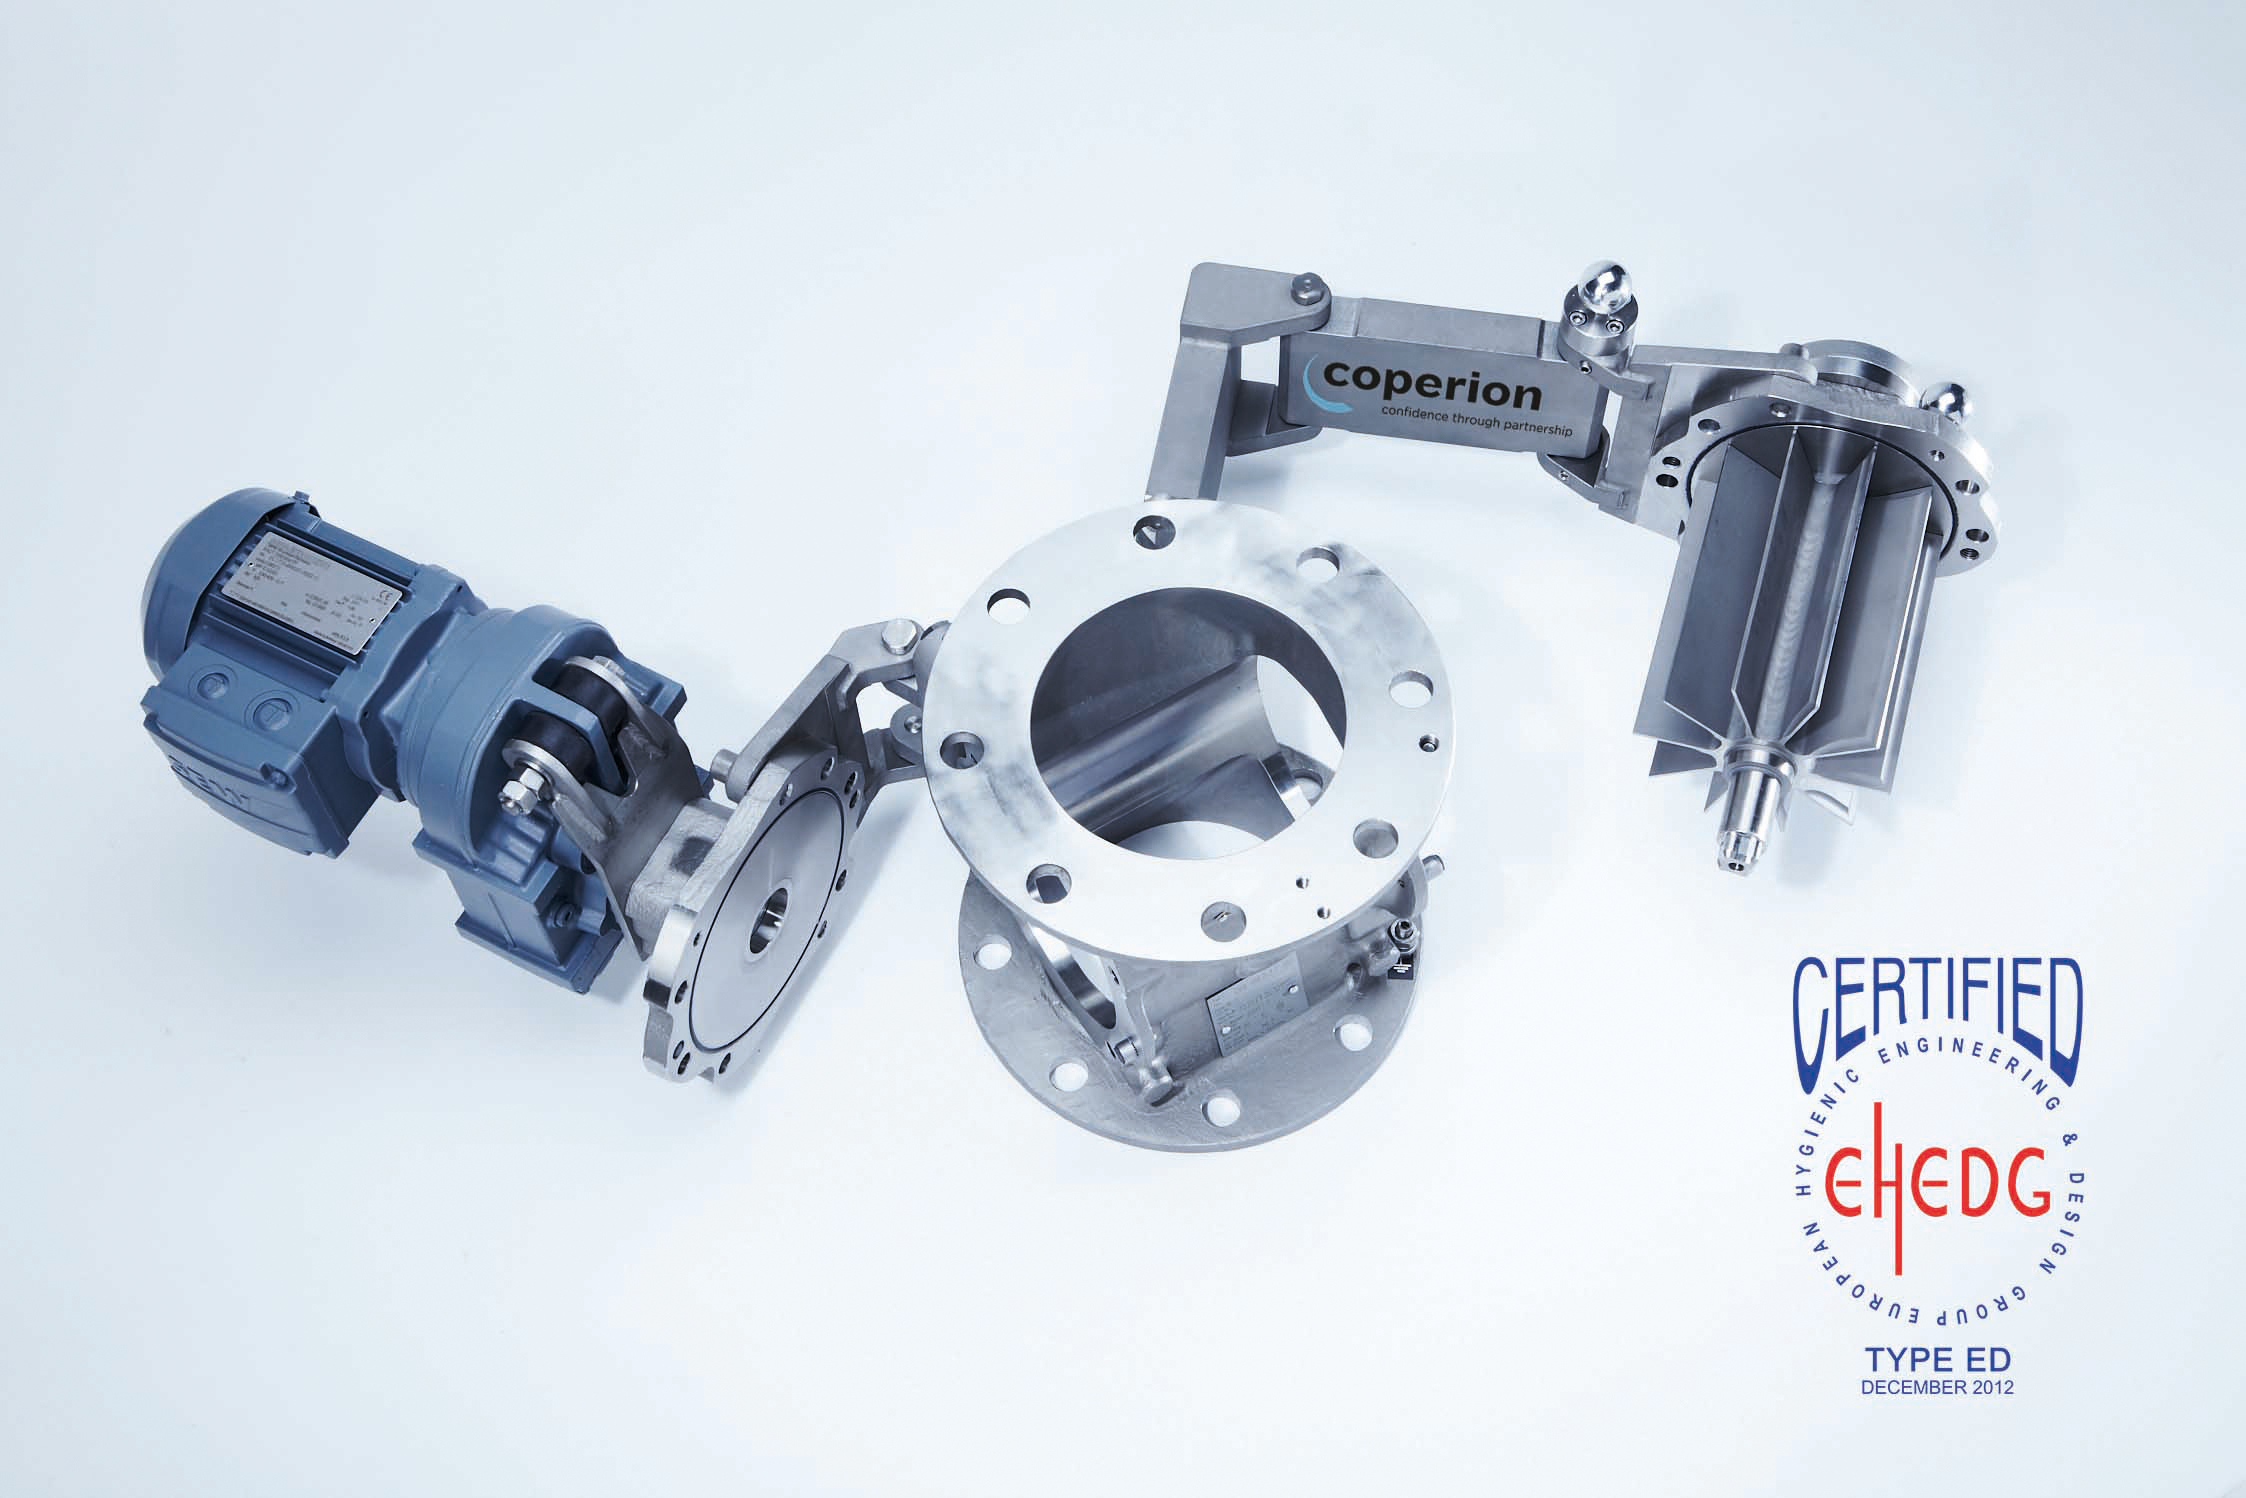 the first rotary valves in the world that are certified by EHEDG for dry cleaning